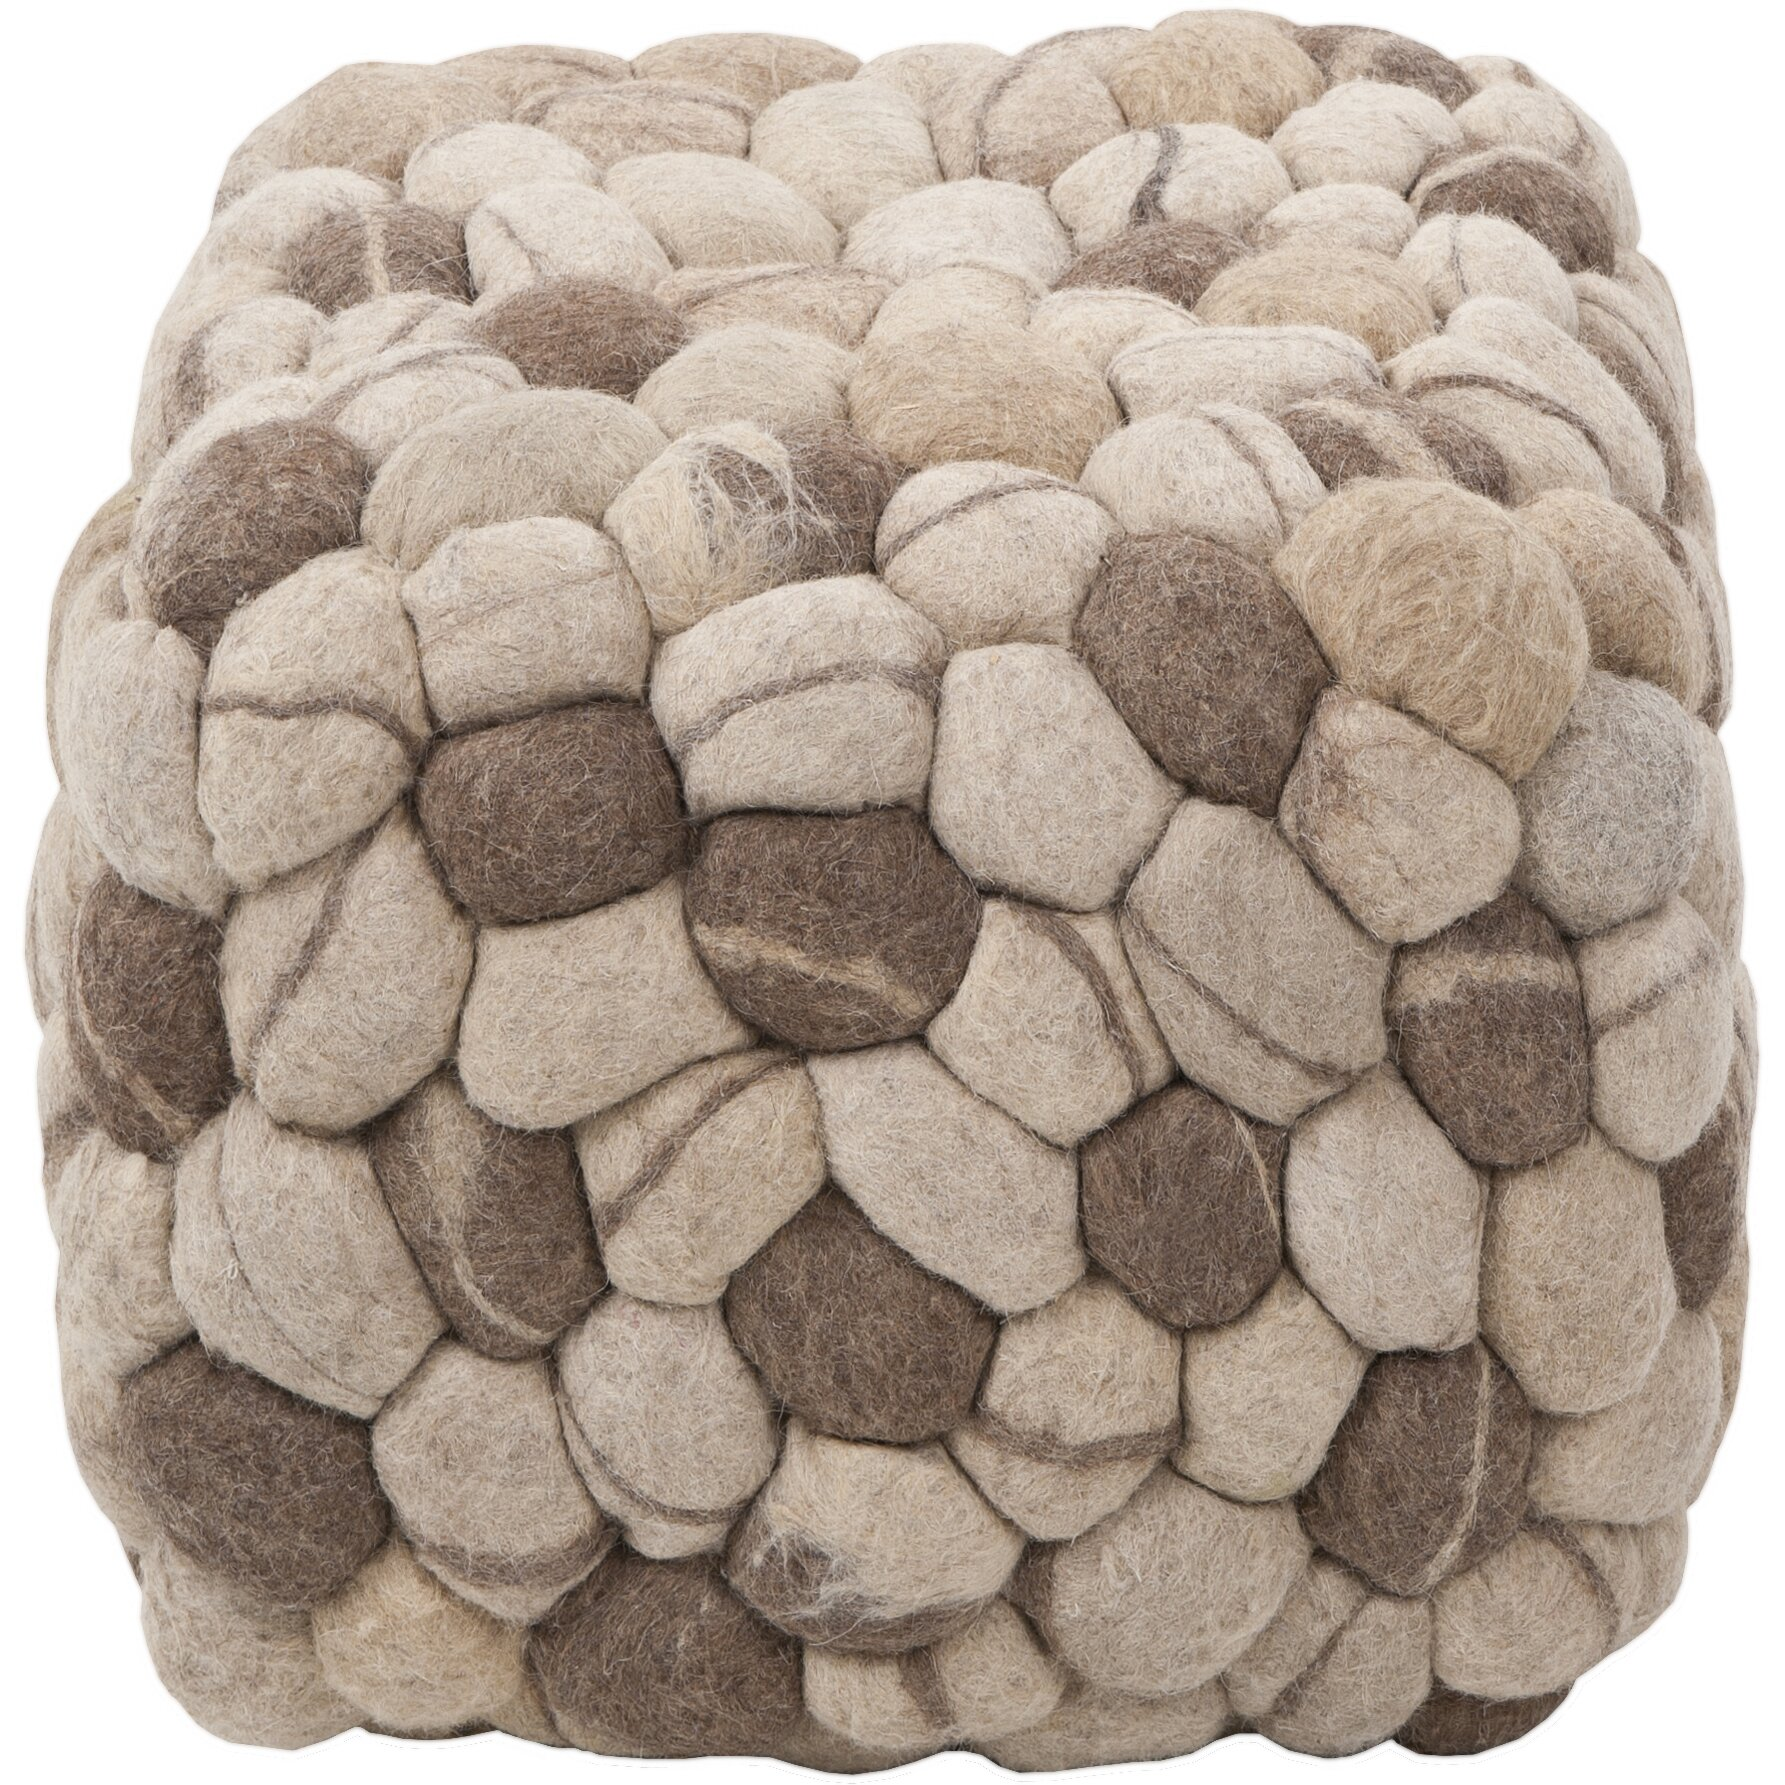 surya pouf cube ottoman reviews wayfair. Black Bedroom Furniture Sets. Home Design Ideas